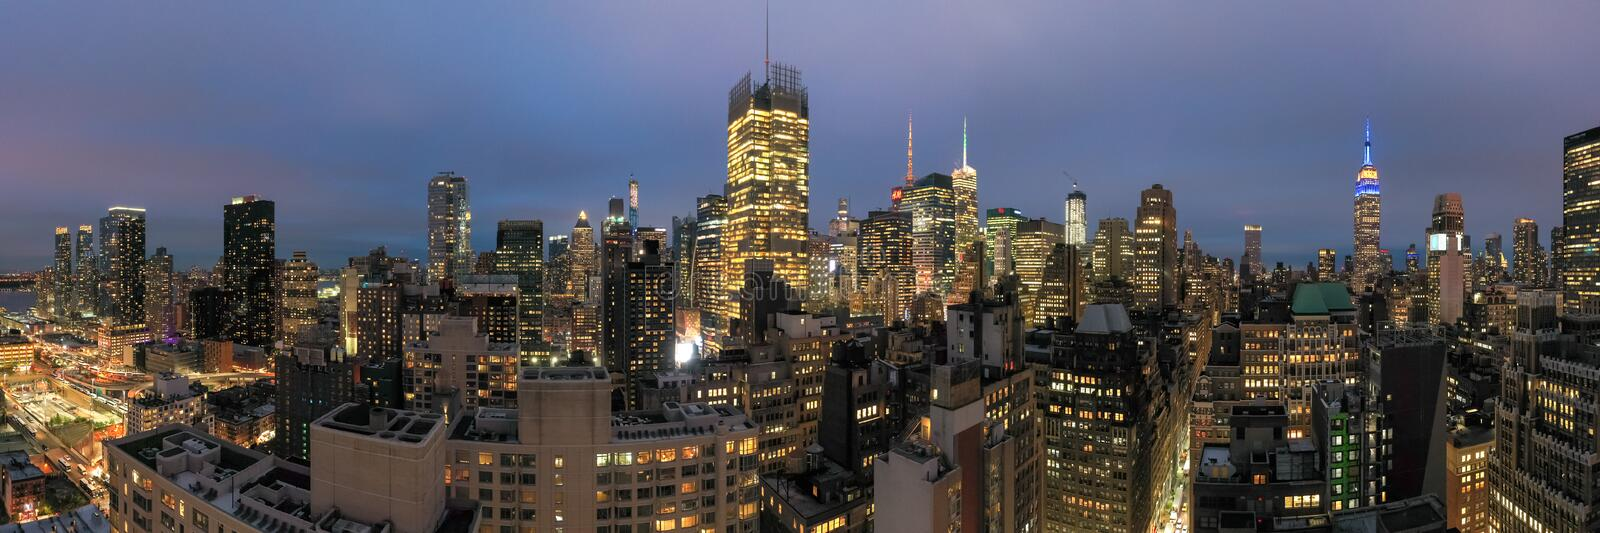 Midtown Manhattan - New York City fotografia de stock